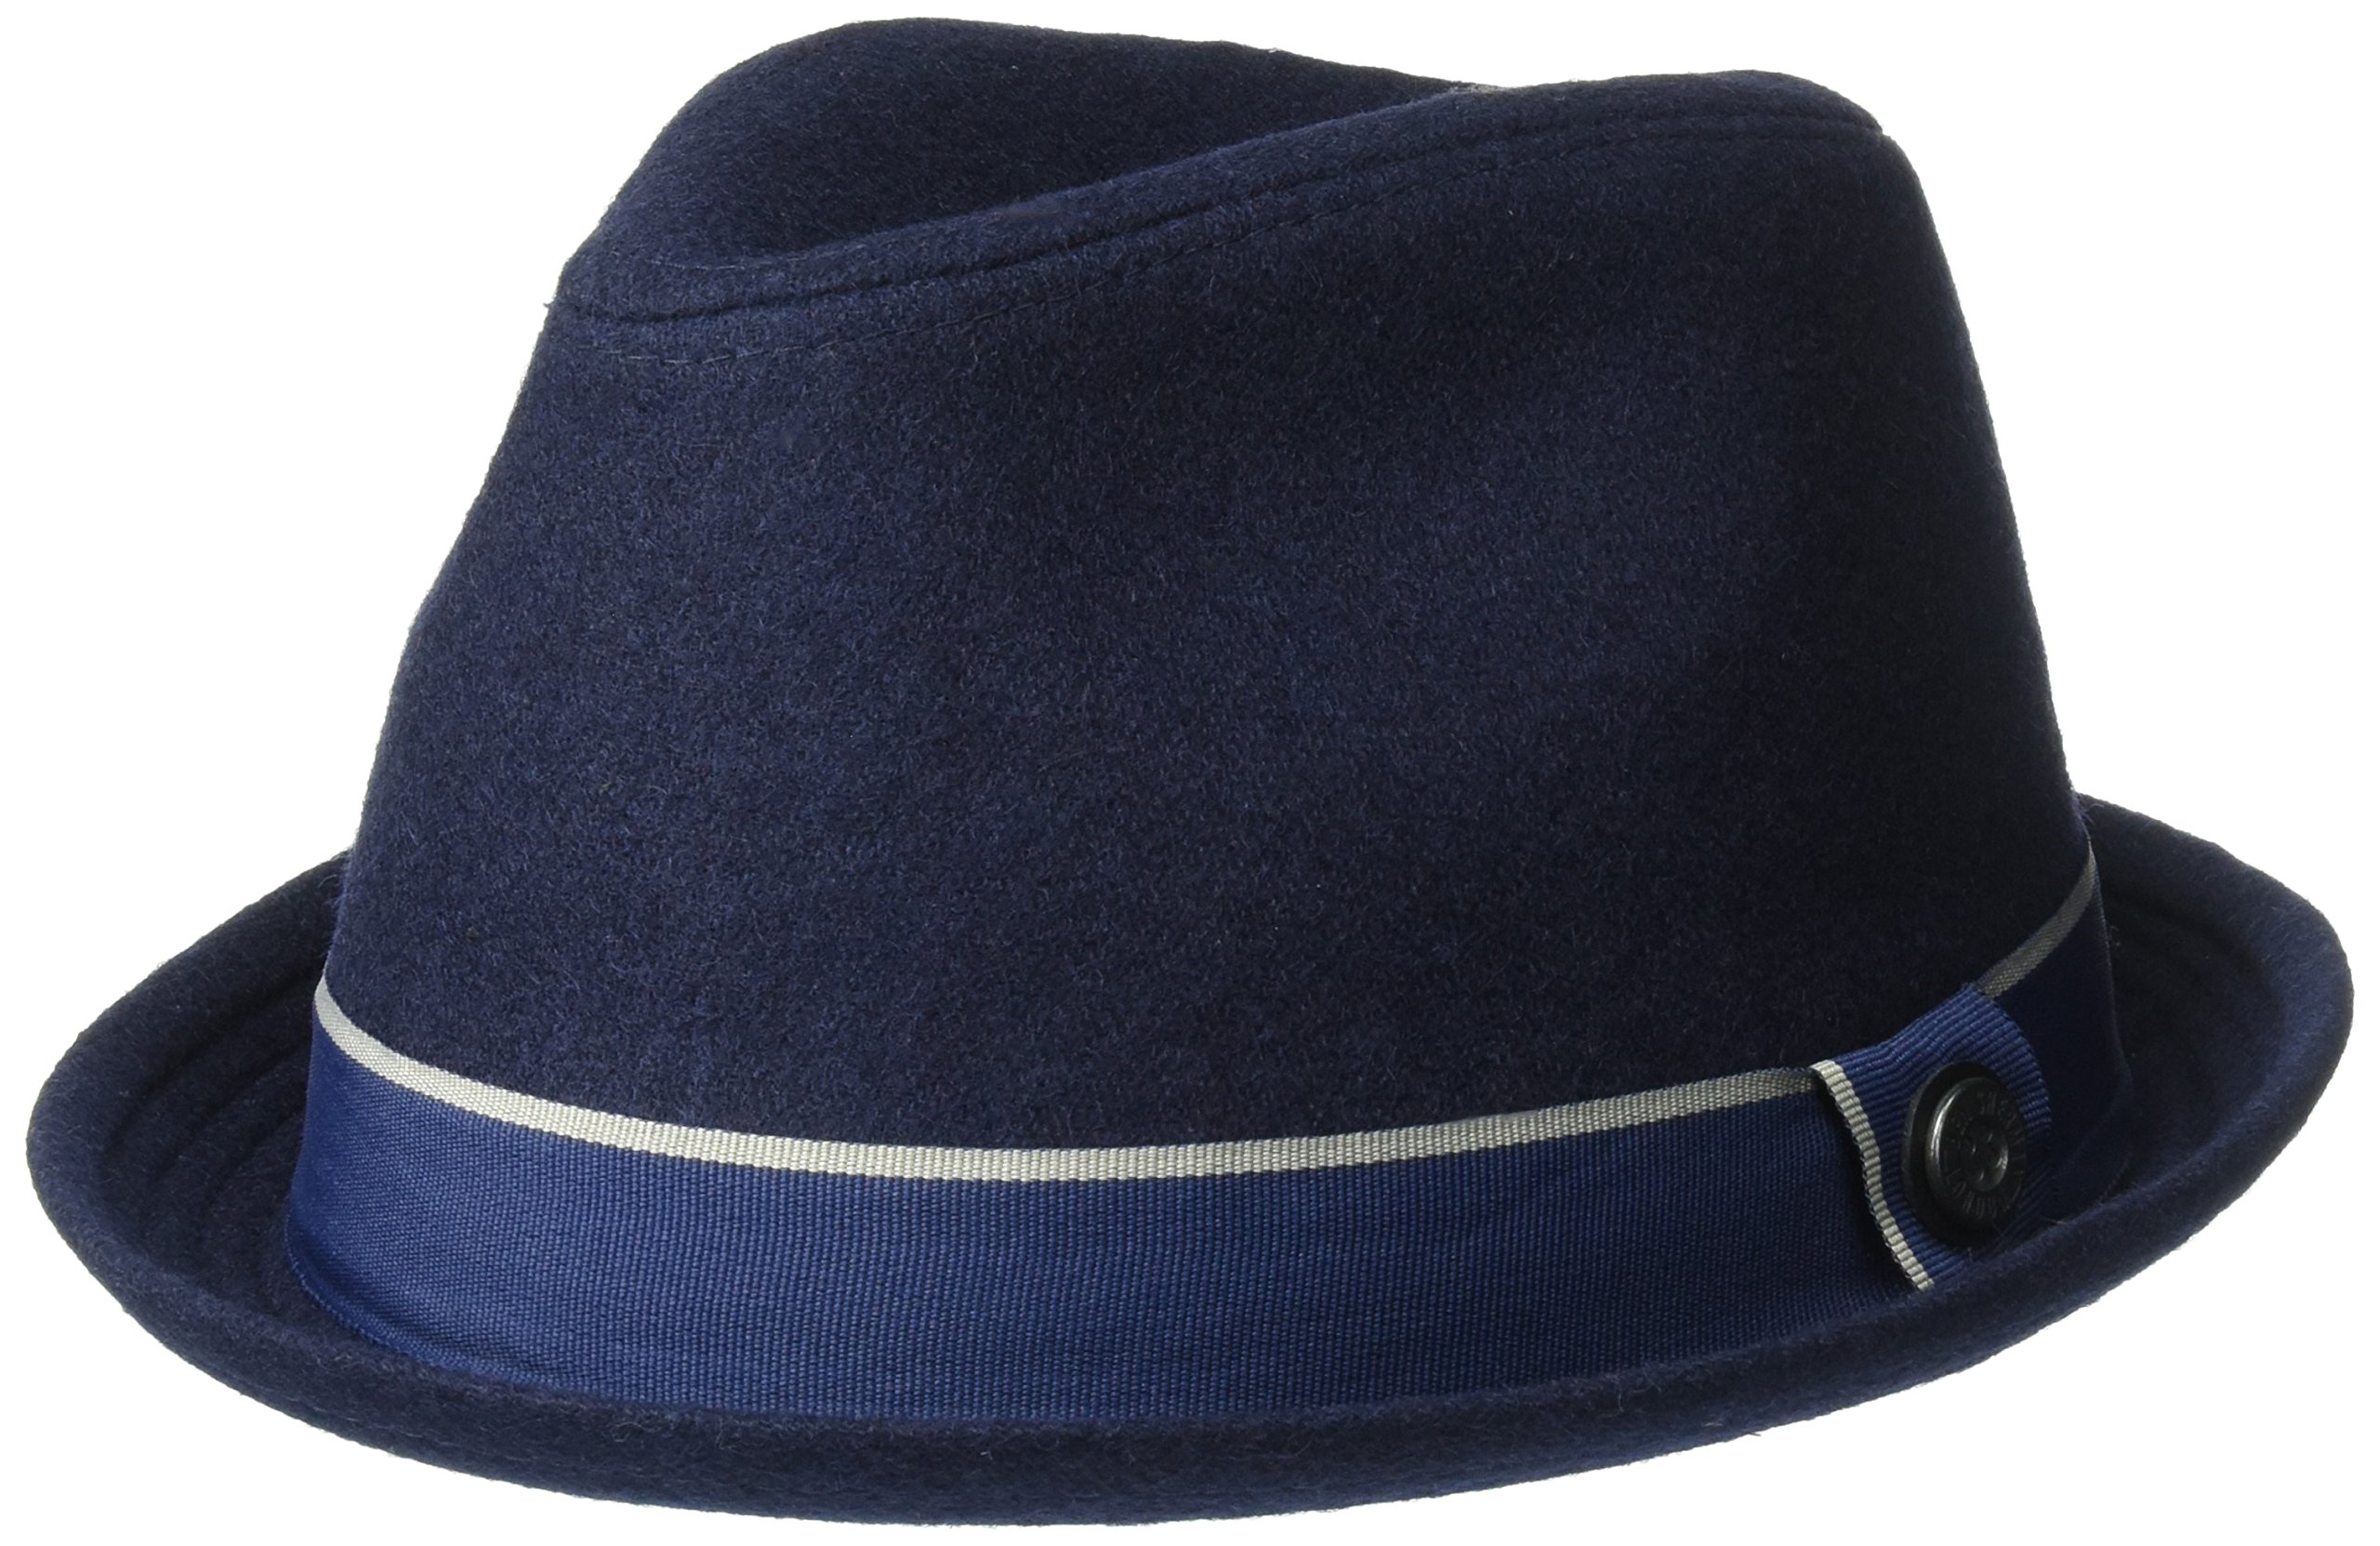 Ben Sherman Men's Melton Wool Trilby with Tipped Band, Navy Blazer, Small/Medium